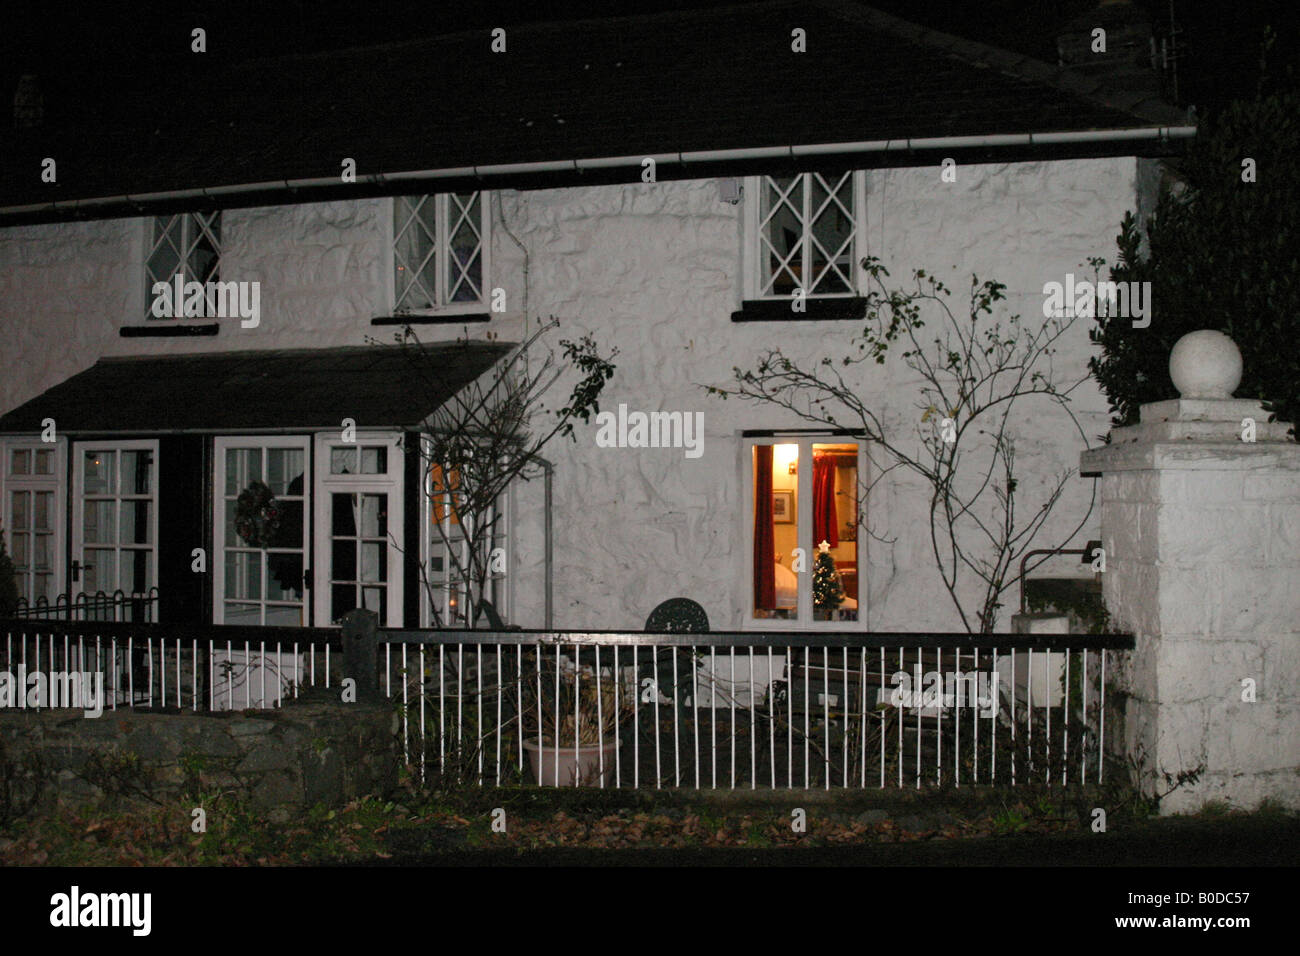 Exterior of Welsh country cottage at Christmas showing white walls and brightly lit living room window with Christmas - Stock Image